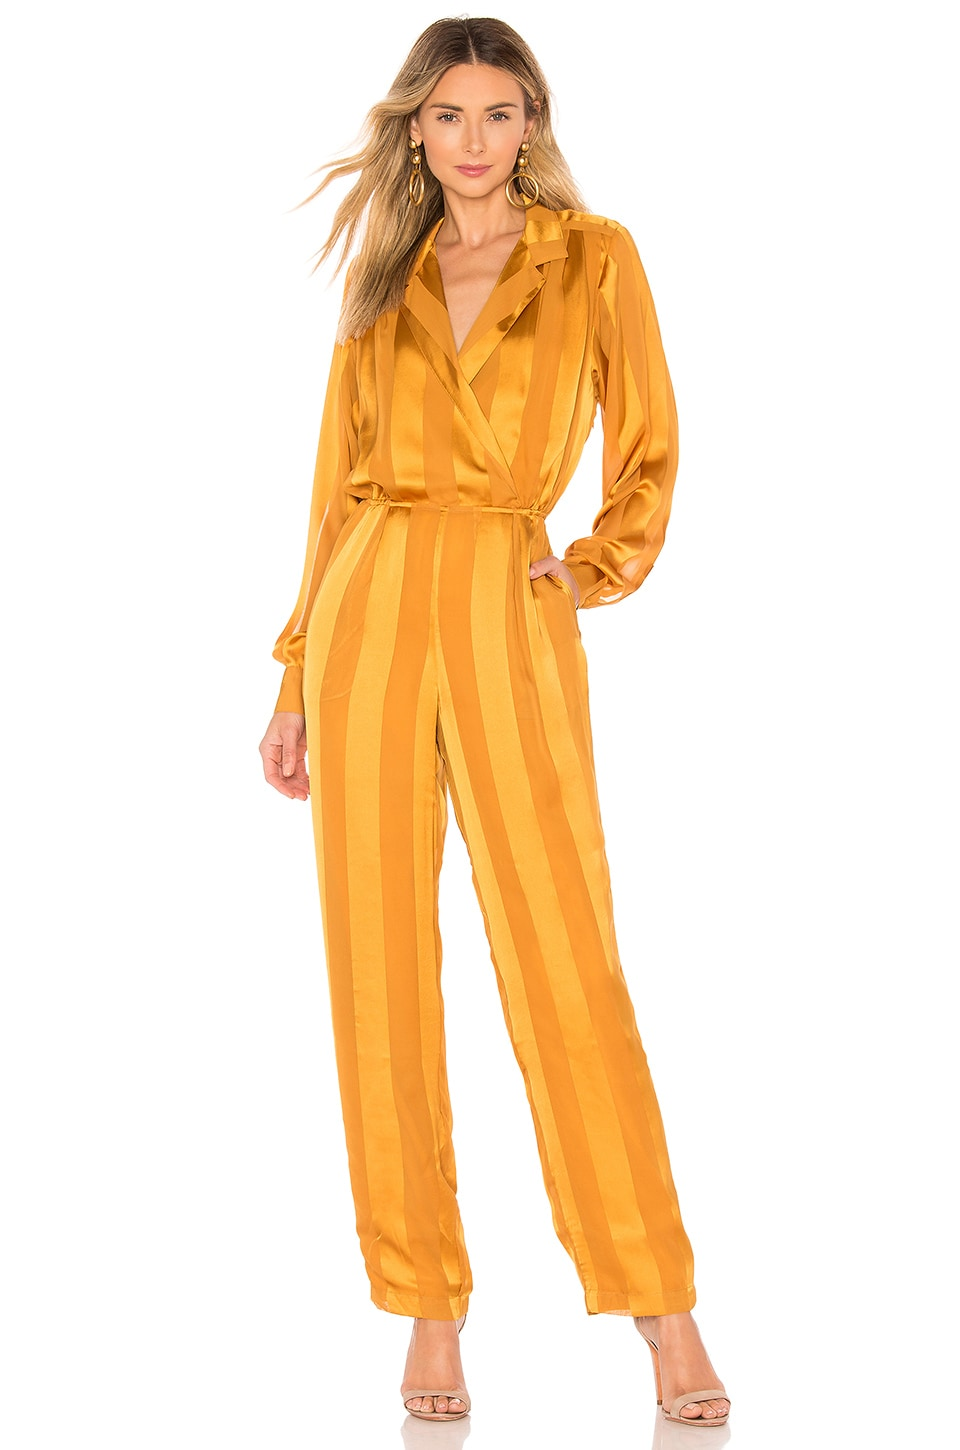 House of Harlow 1960 X REVOLVE Margot Jumpsuit in Inca Gold